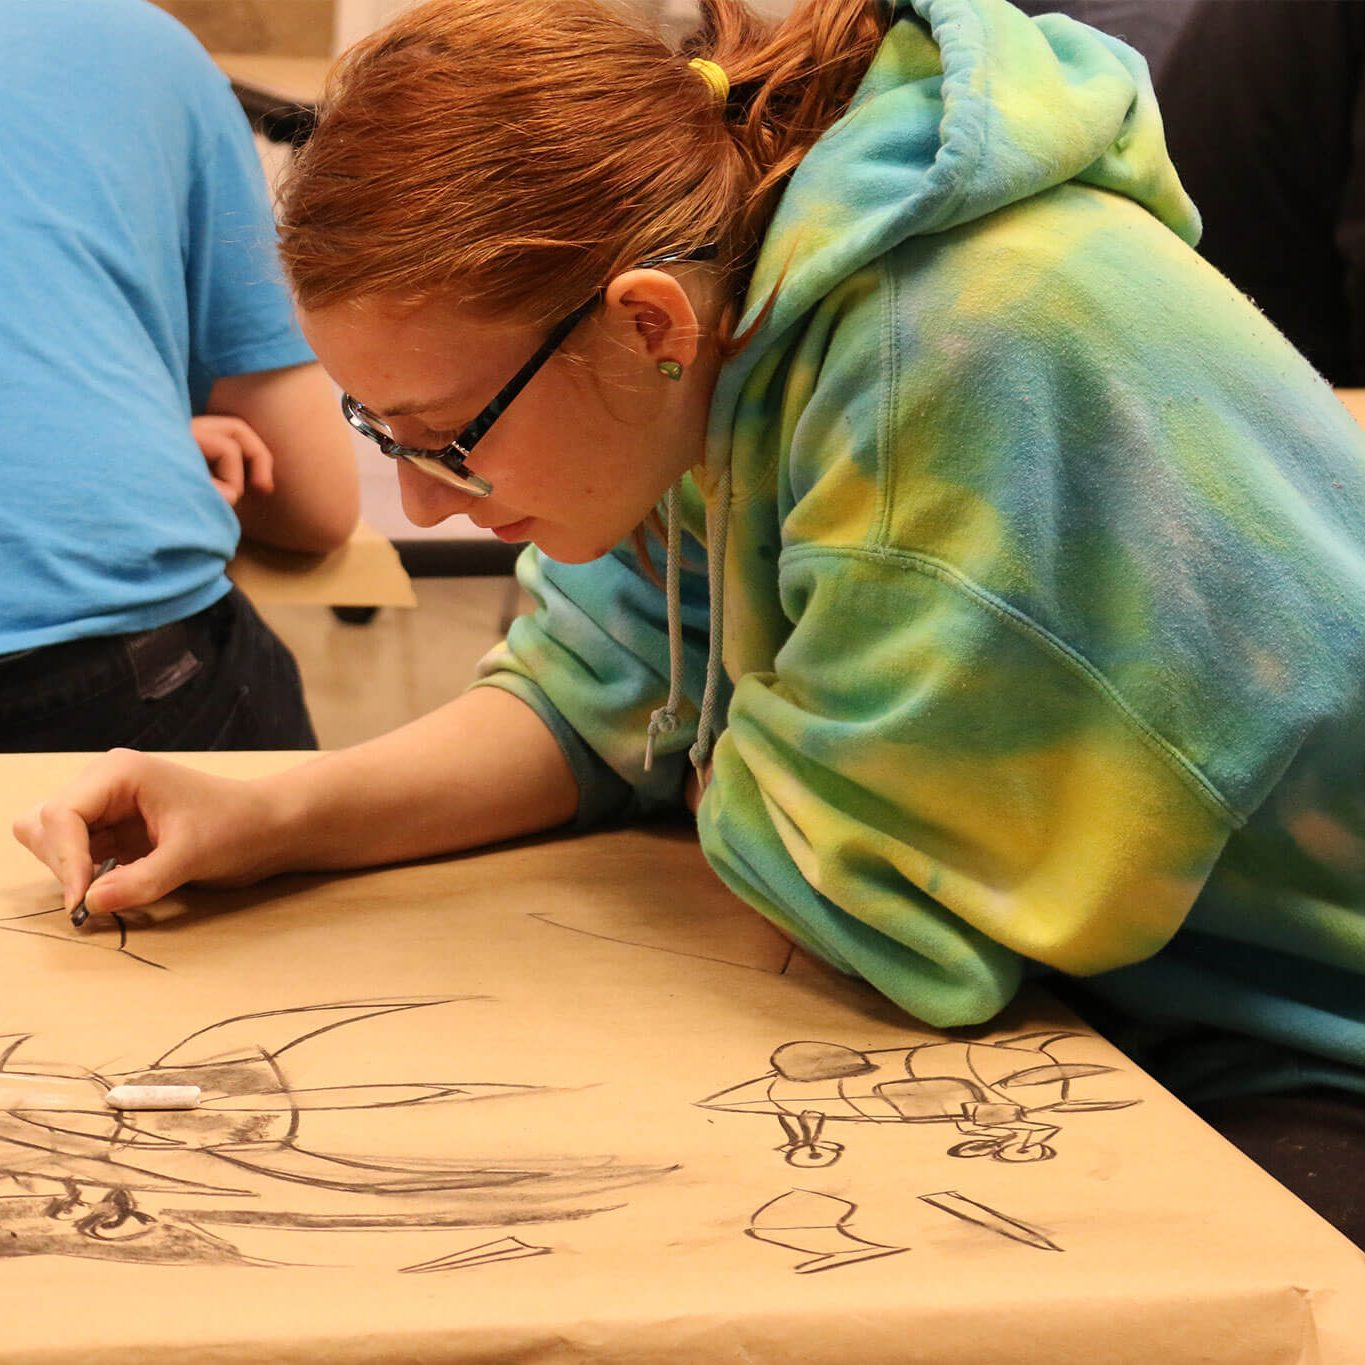 Video and Game Design Animation. CTEC Career Technical Education Center through Salem-Keizer Public Schools prepares students for high-skill, high-wage, and high-demand careers, while developing the professional skills, technical knowledge, academic foundation and real-world experience to assure their success upon graduation.